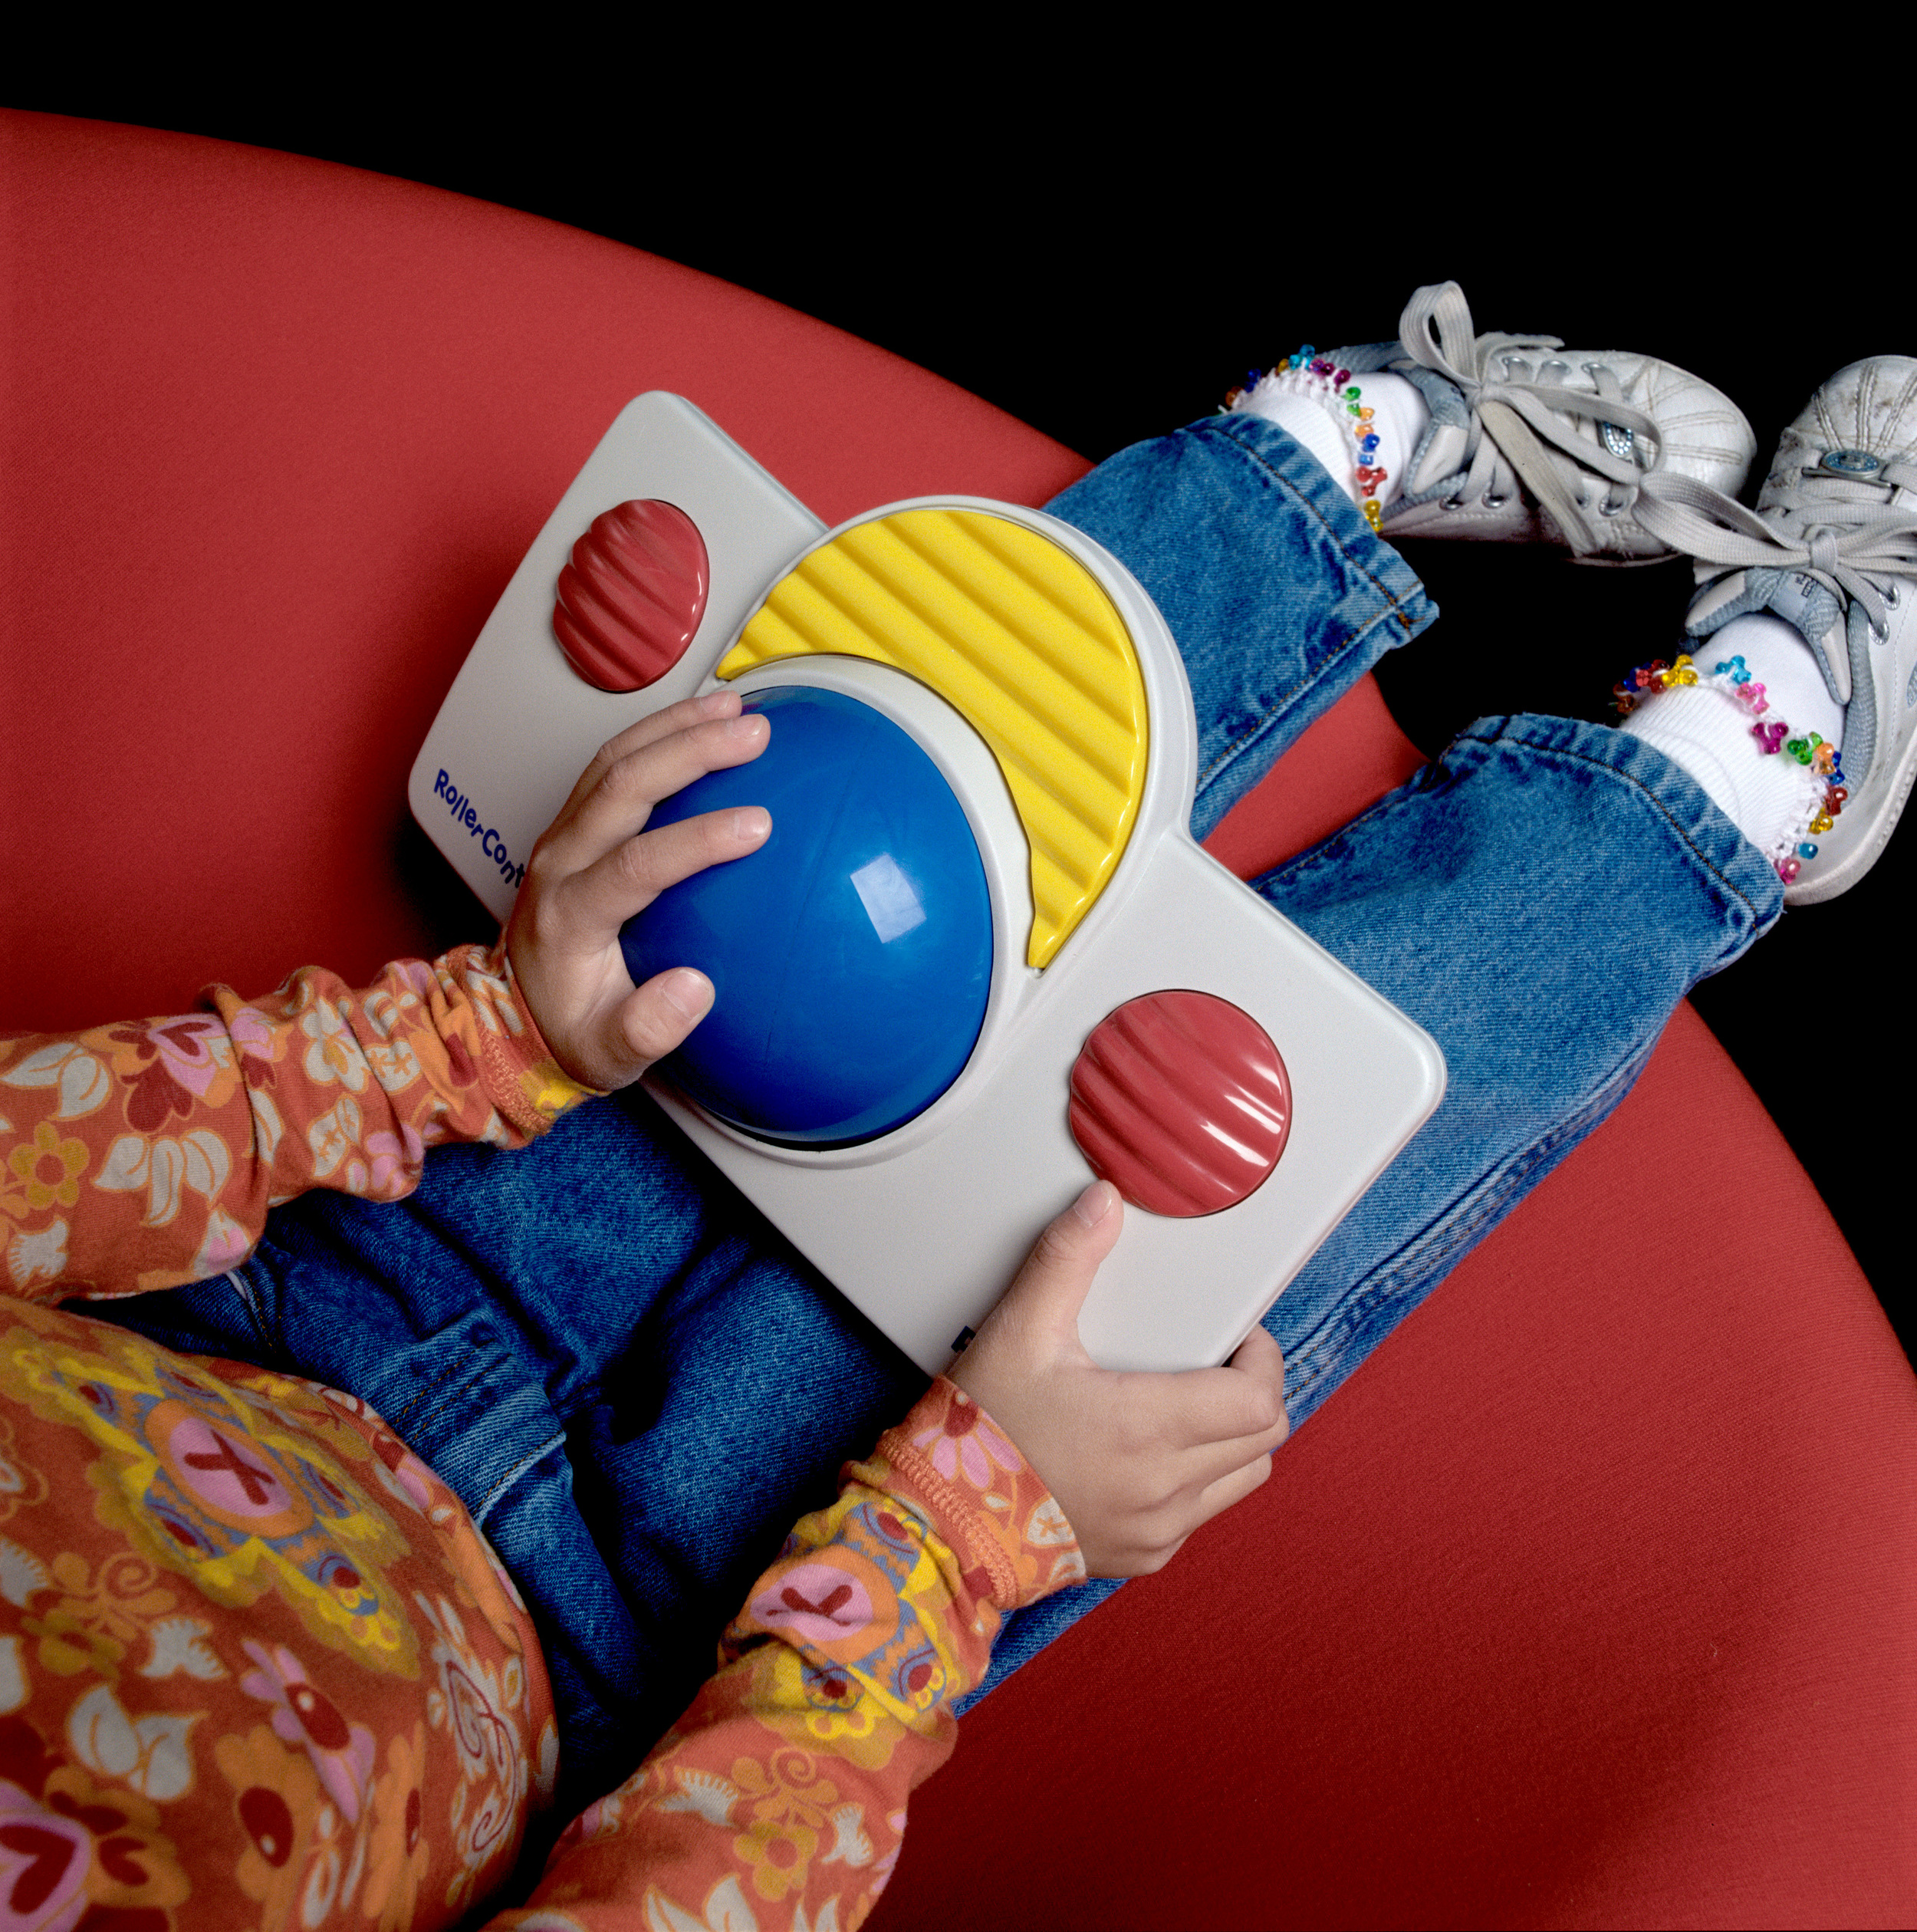 Philips Kid's Roller Controller